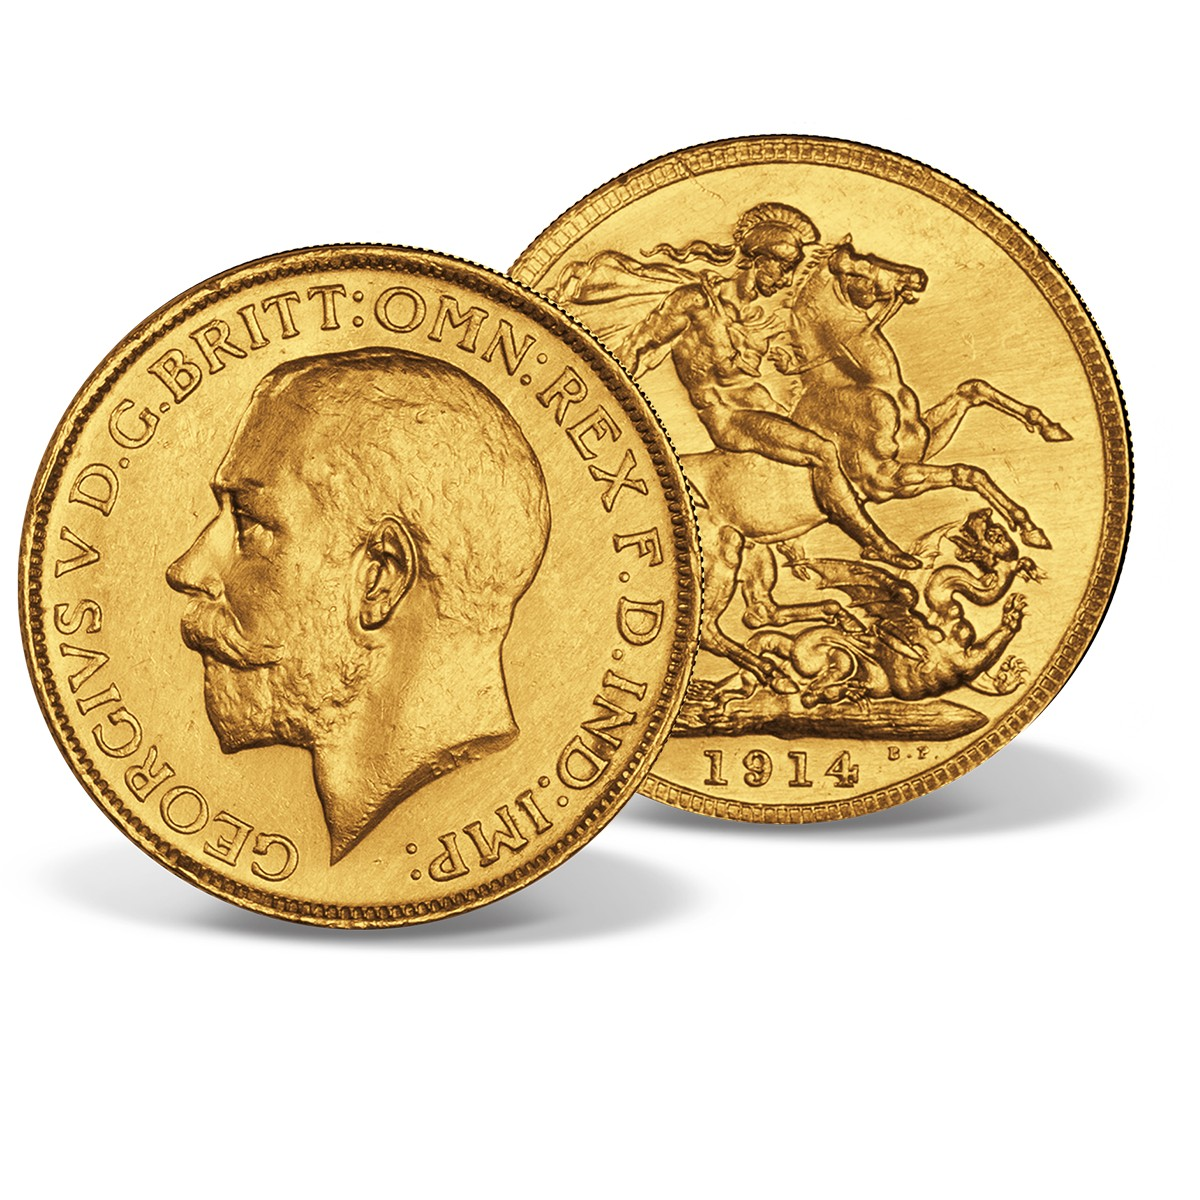 British coins and strikes - British releases | Windsor Mint